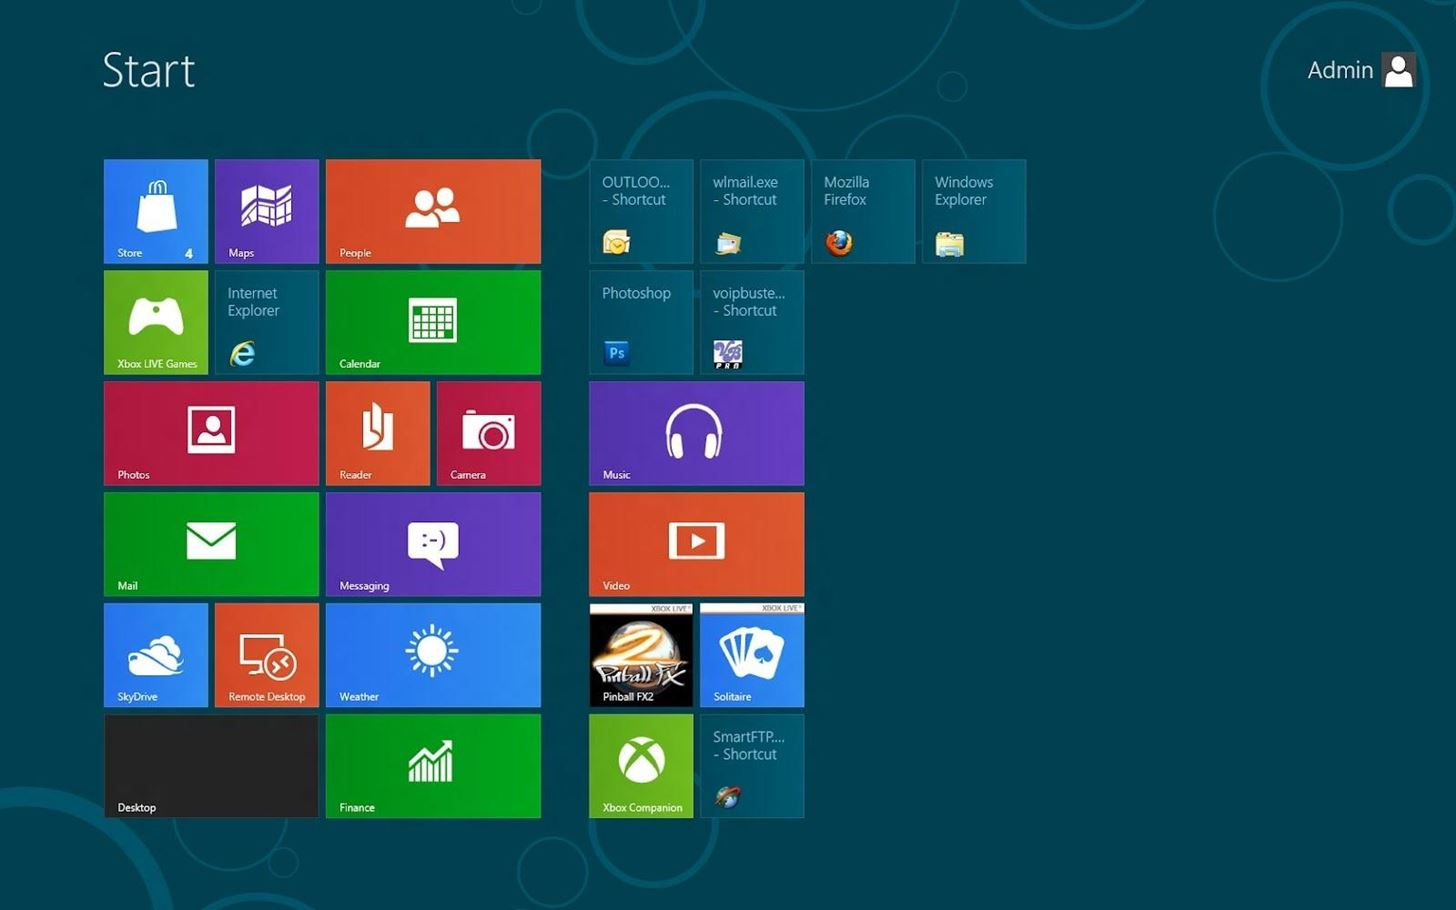 How to Keep Hangs and Freezes at Bay in Windows 8